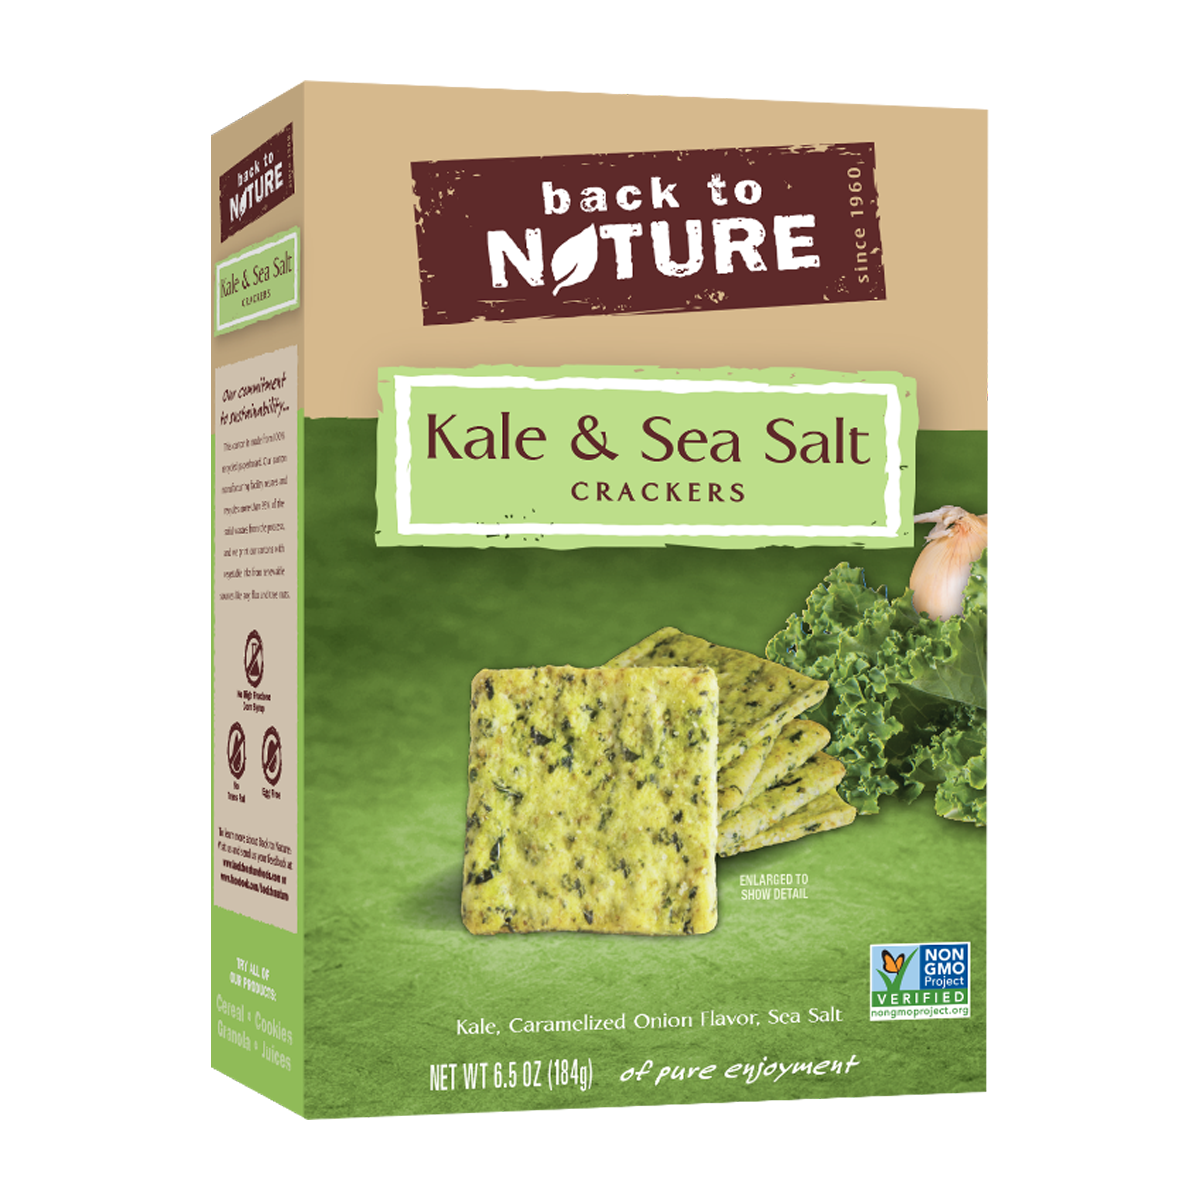 Back To Nature Kale & Sea Salt Crackers